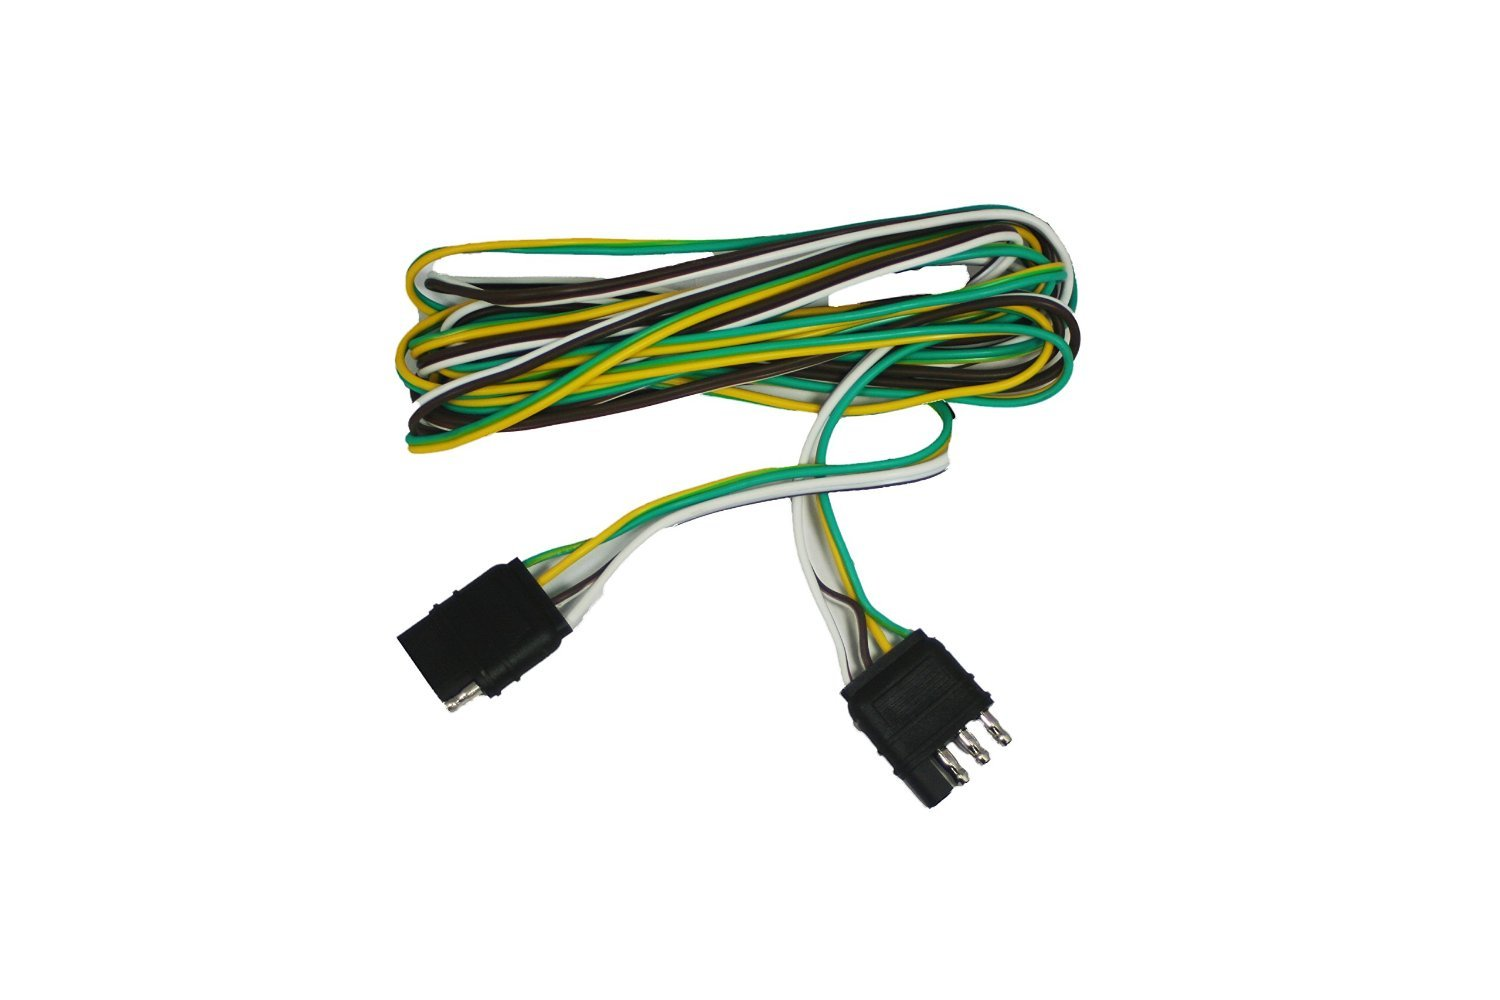 Trailer Wiring Harness Light Free Diagram For You Adapter Abn 4 Way Pin Plug Flat 20 Gauge